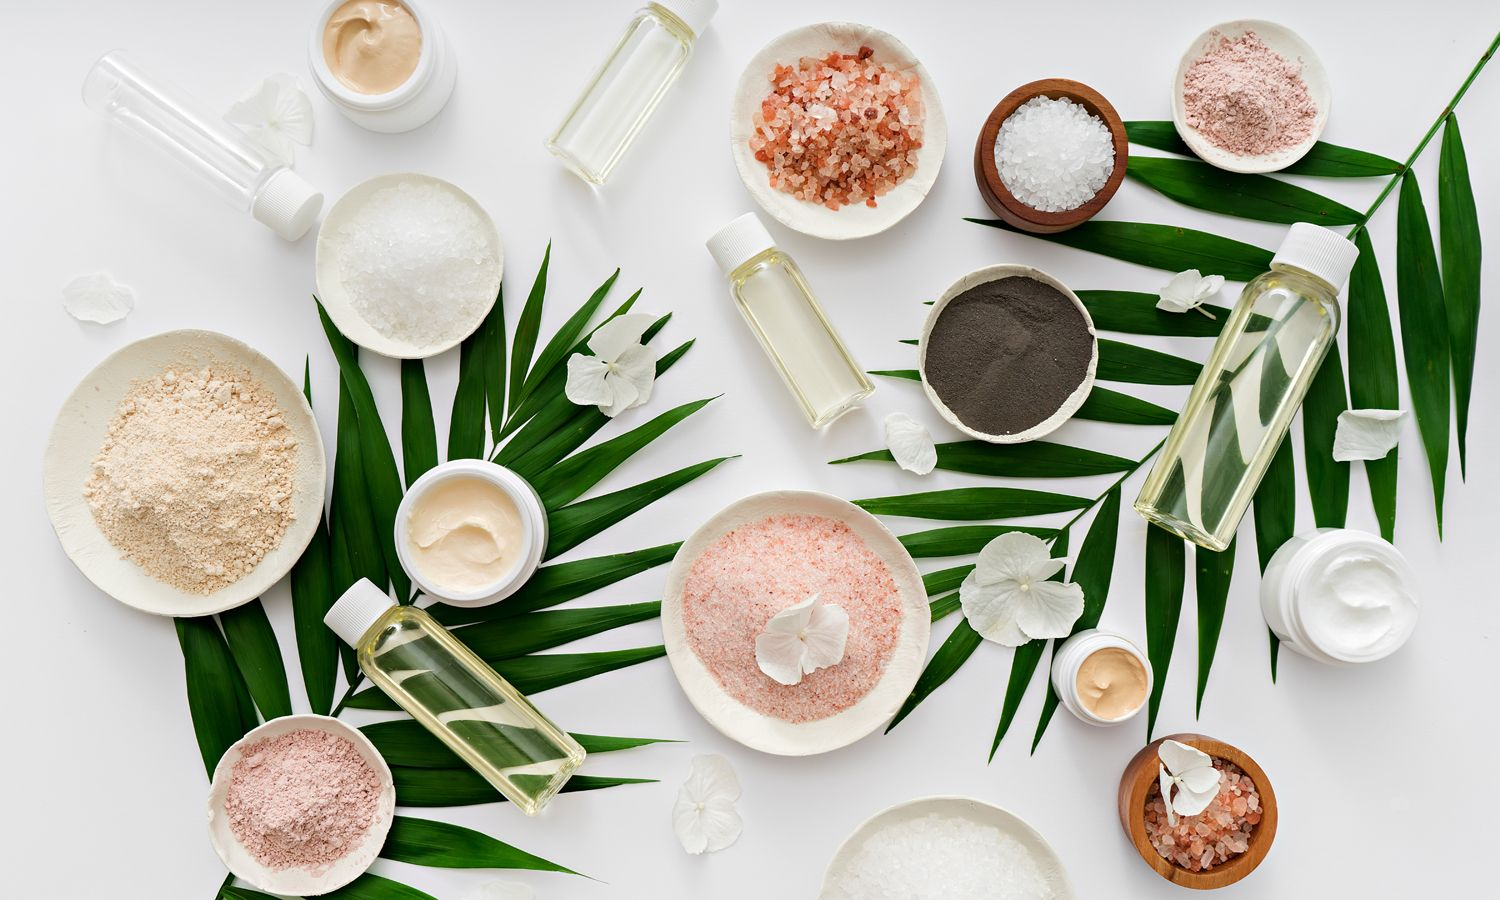 10 Natural Skincare Products To Try